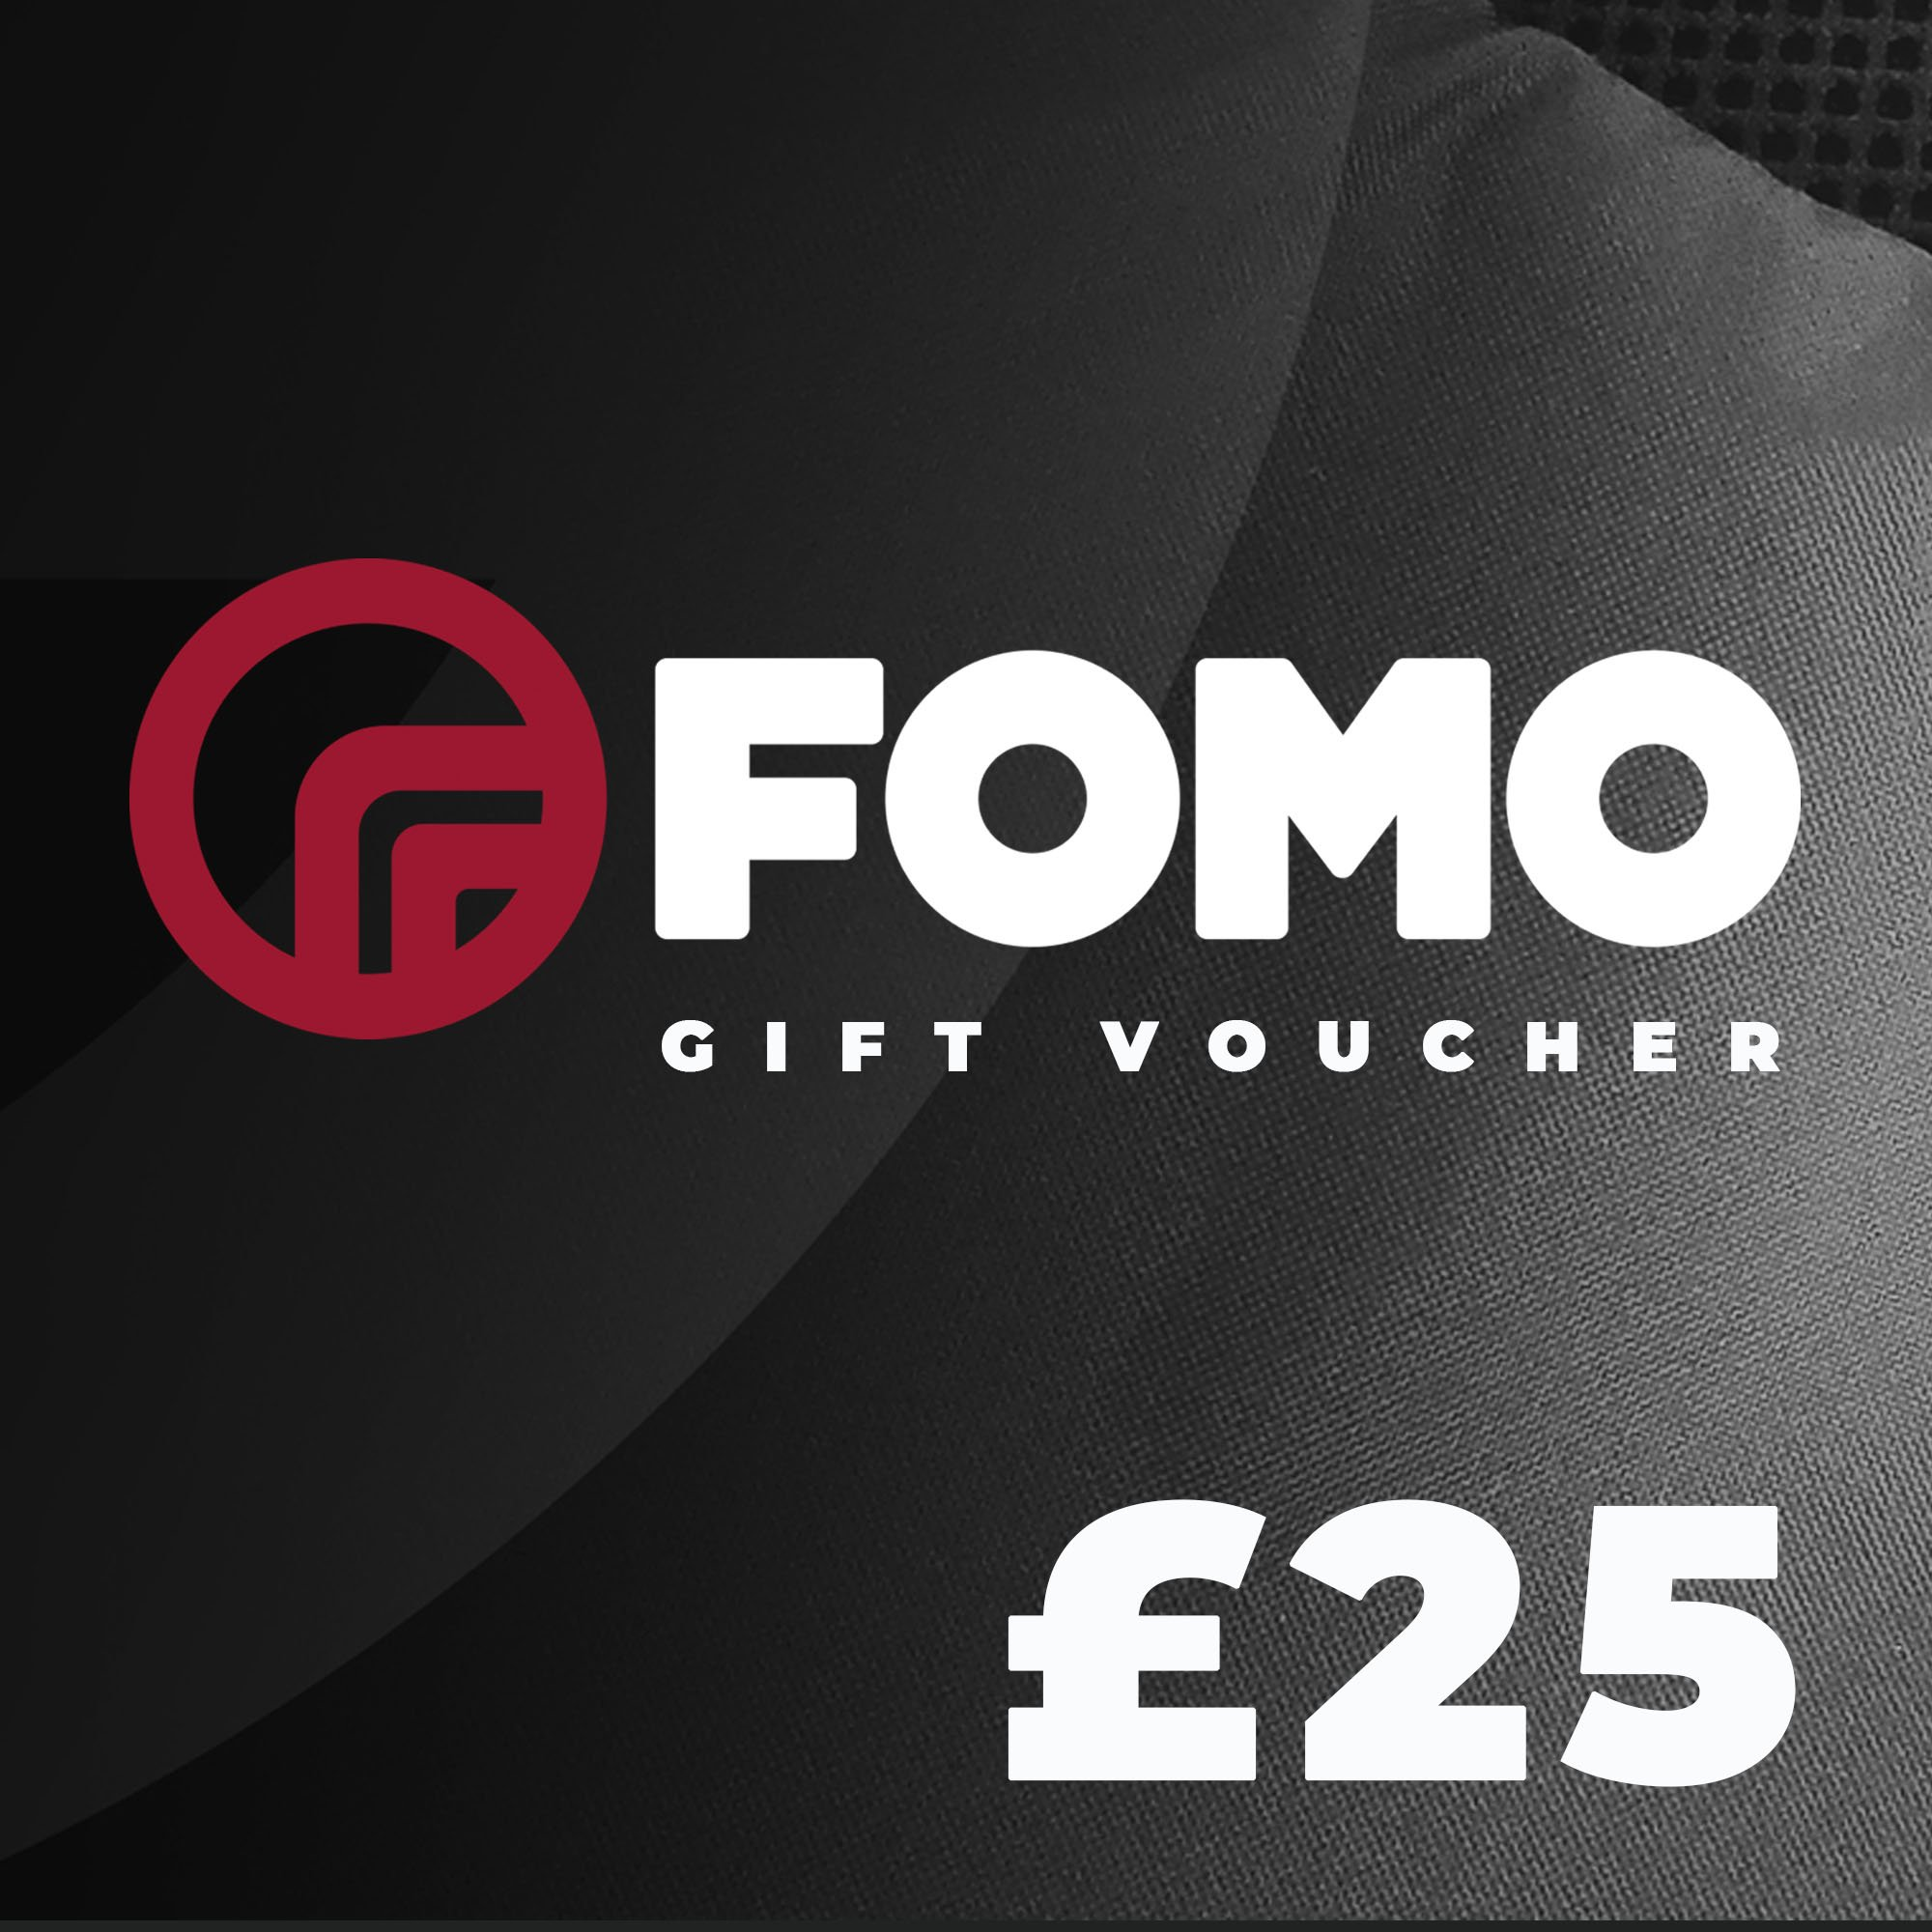 https://www.fomoprotection.com/wp-content/uploads/2019/11/Gift-Voucher-£25.jpg